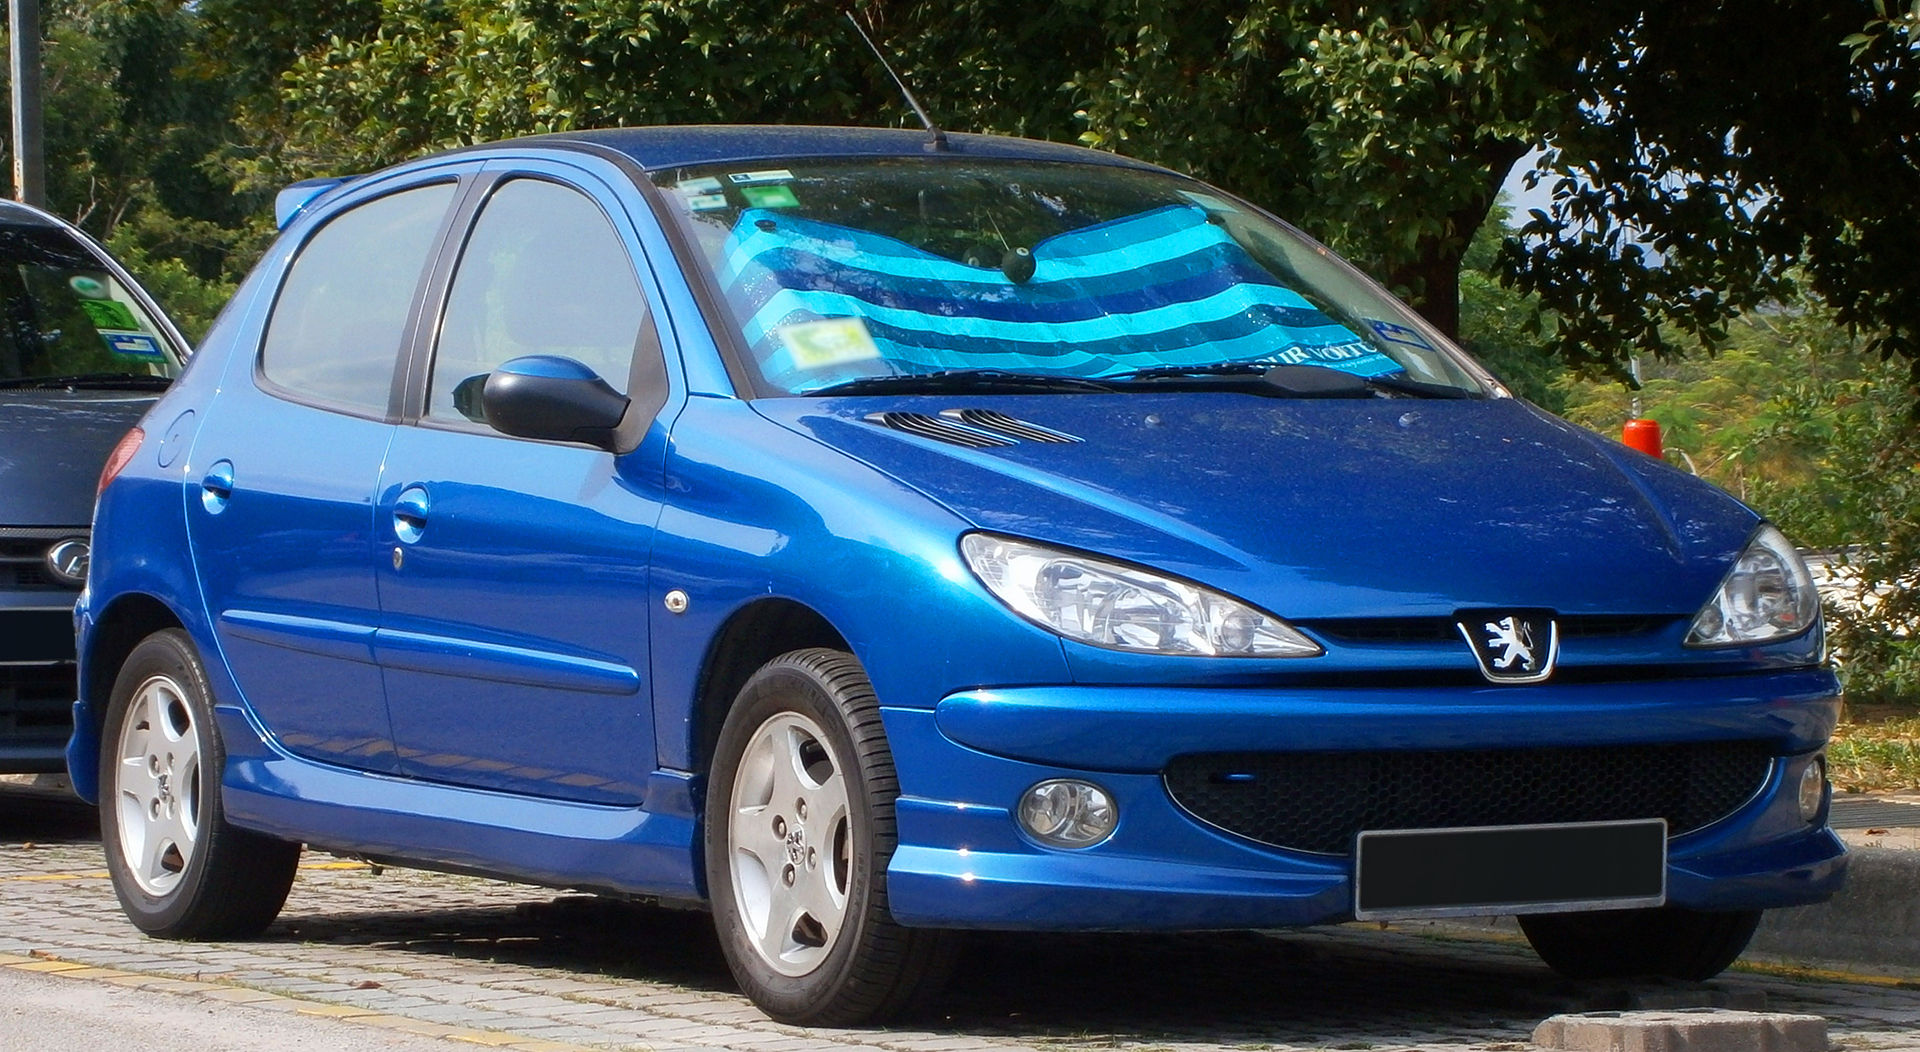 Peugeot 206 Wikipedia HD Wallpapers Download free images and photos [musssic.tk]